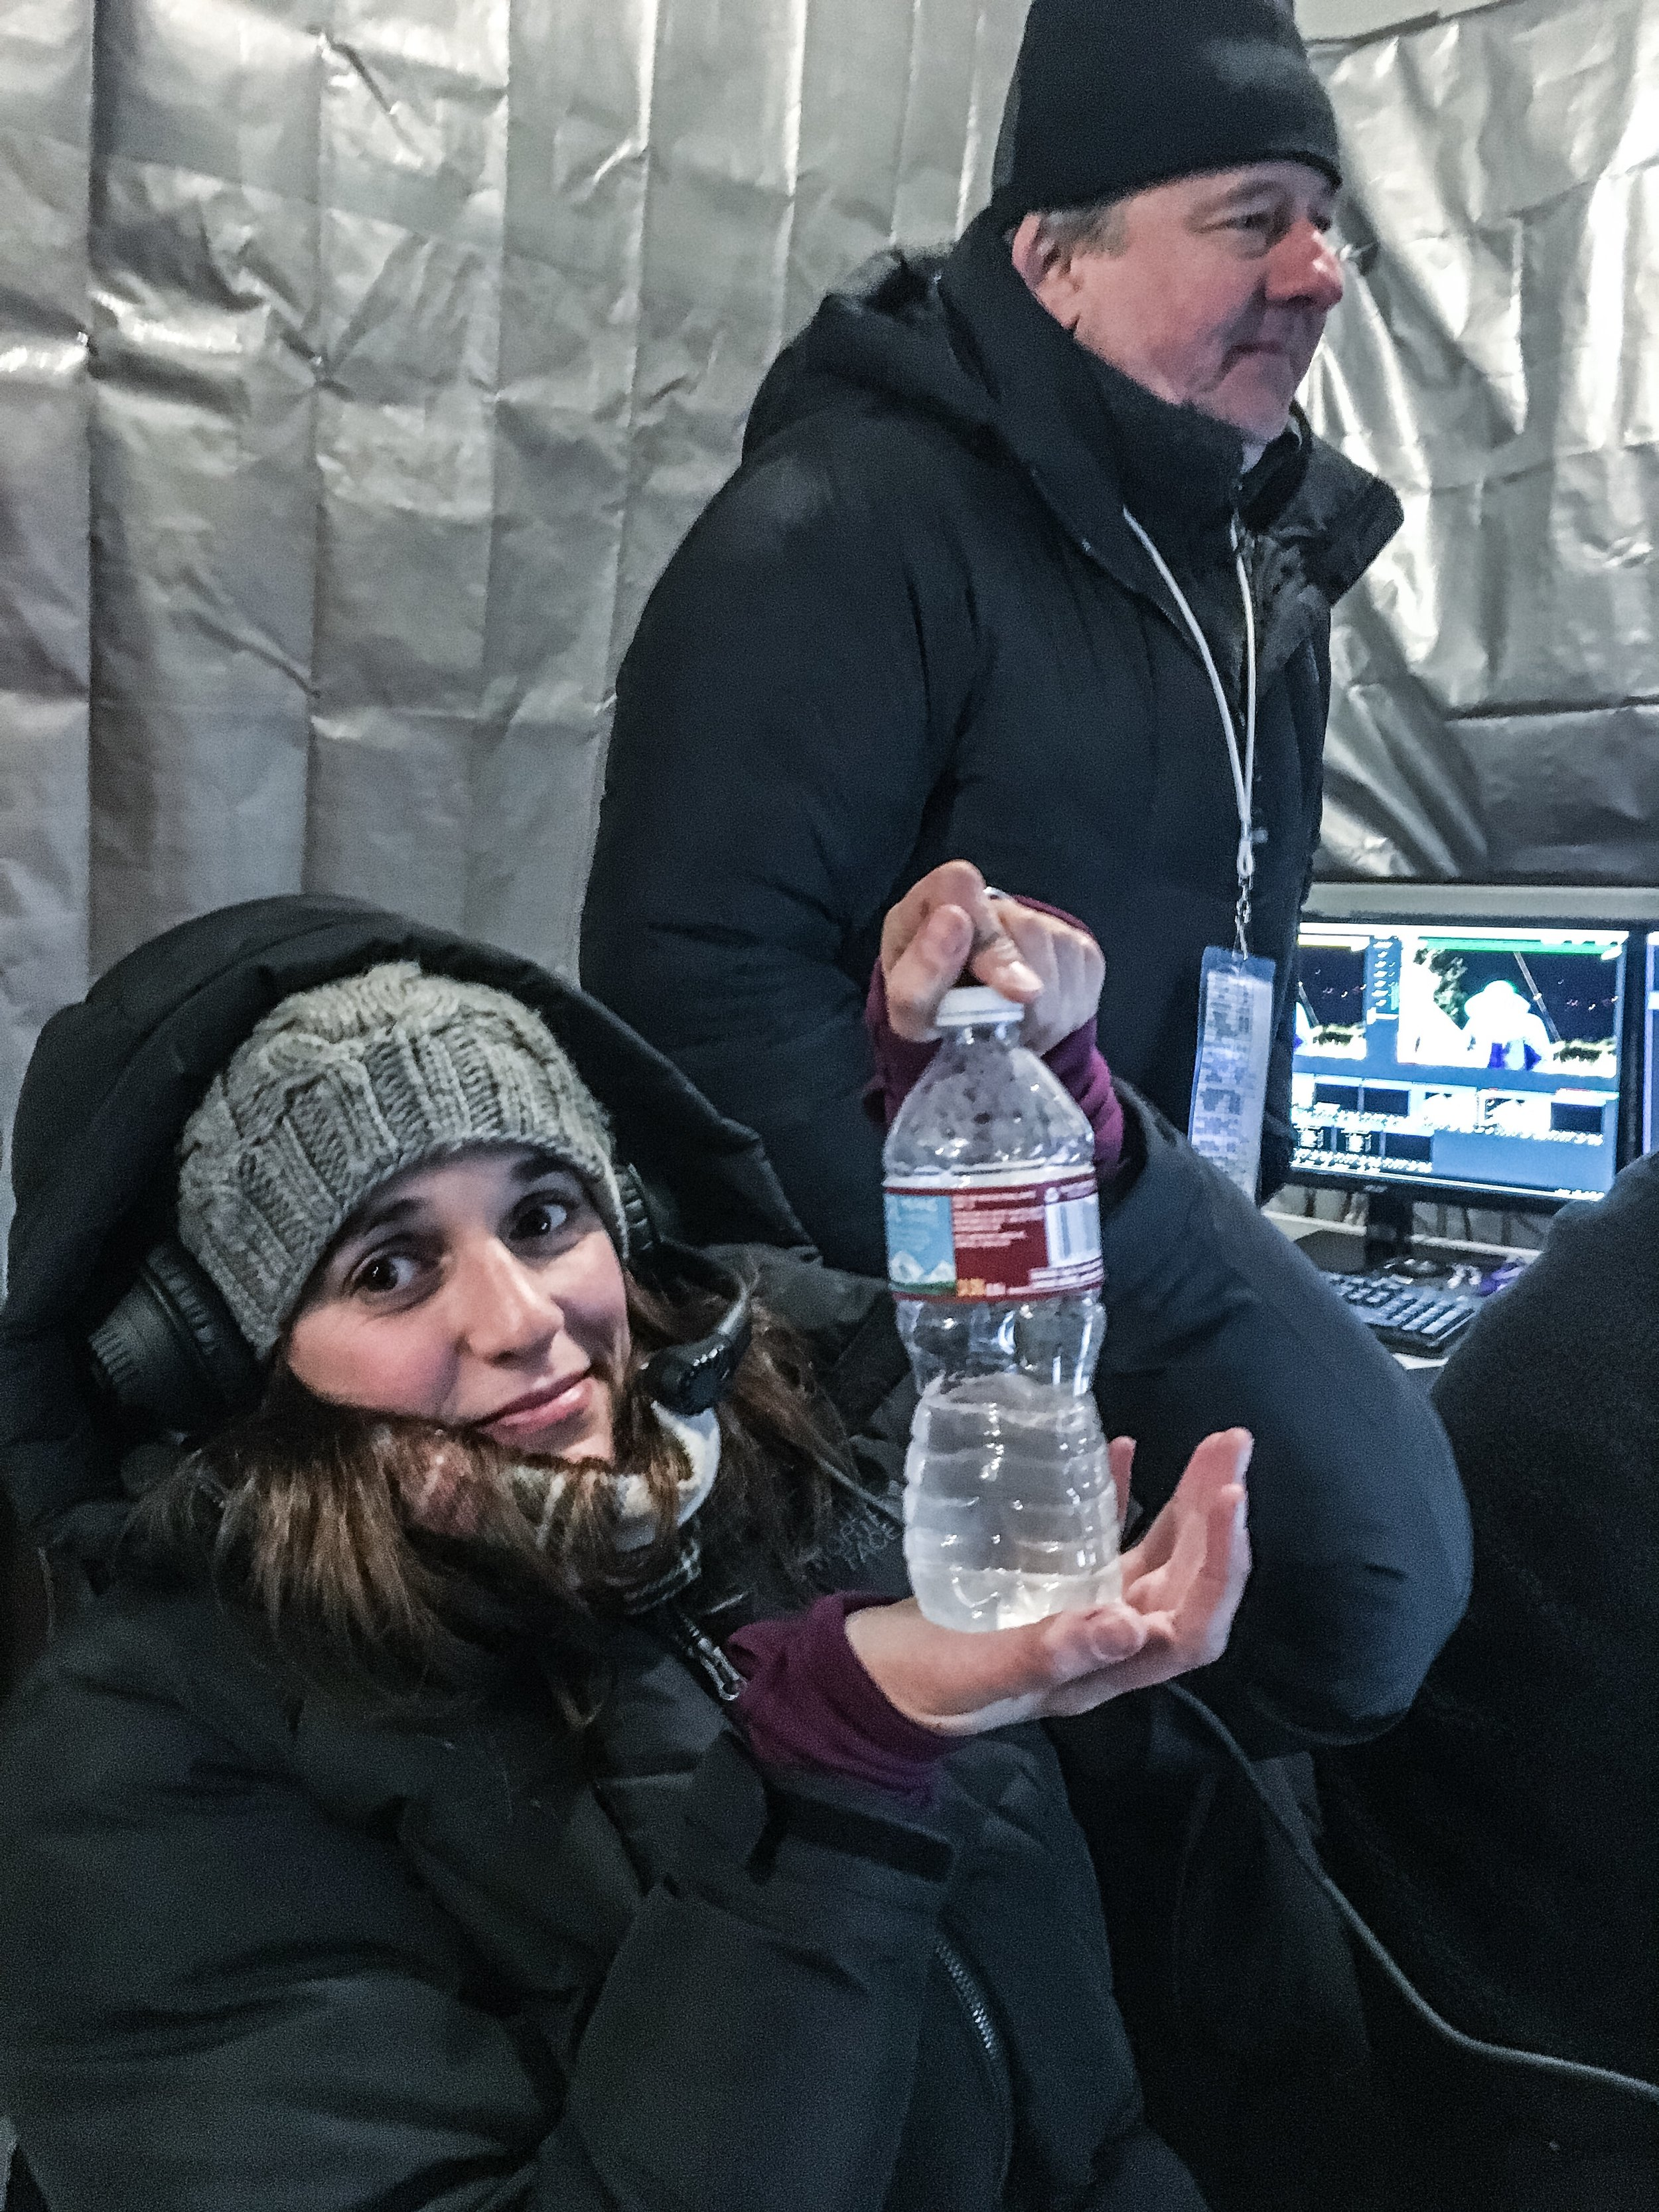 Producer Ale with a frozen bottle of water. Shit gets cold at the Ice Climbing World Cups. Clue is in the name I guess. Main Man Dave in the background. © Liam Lonsdale 2016